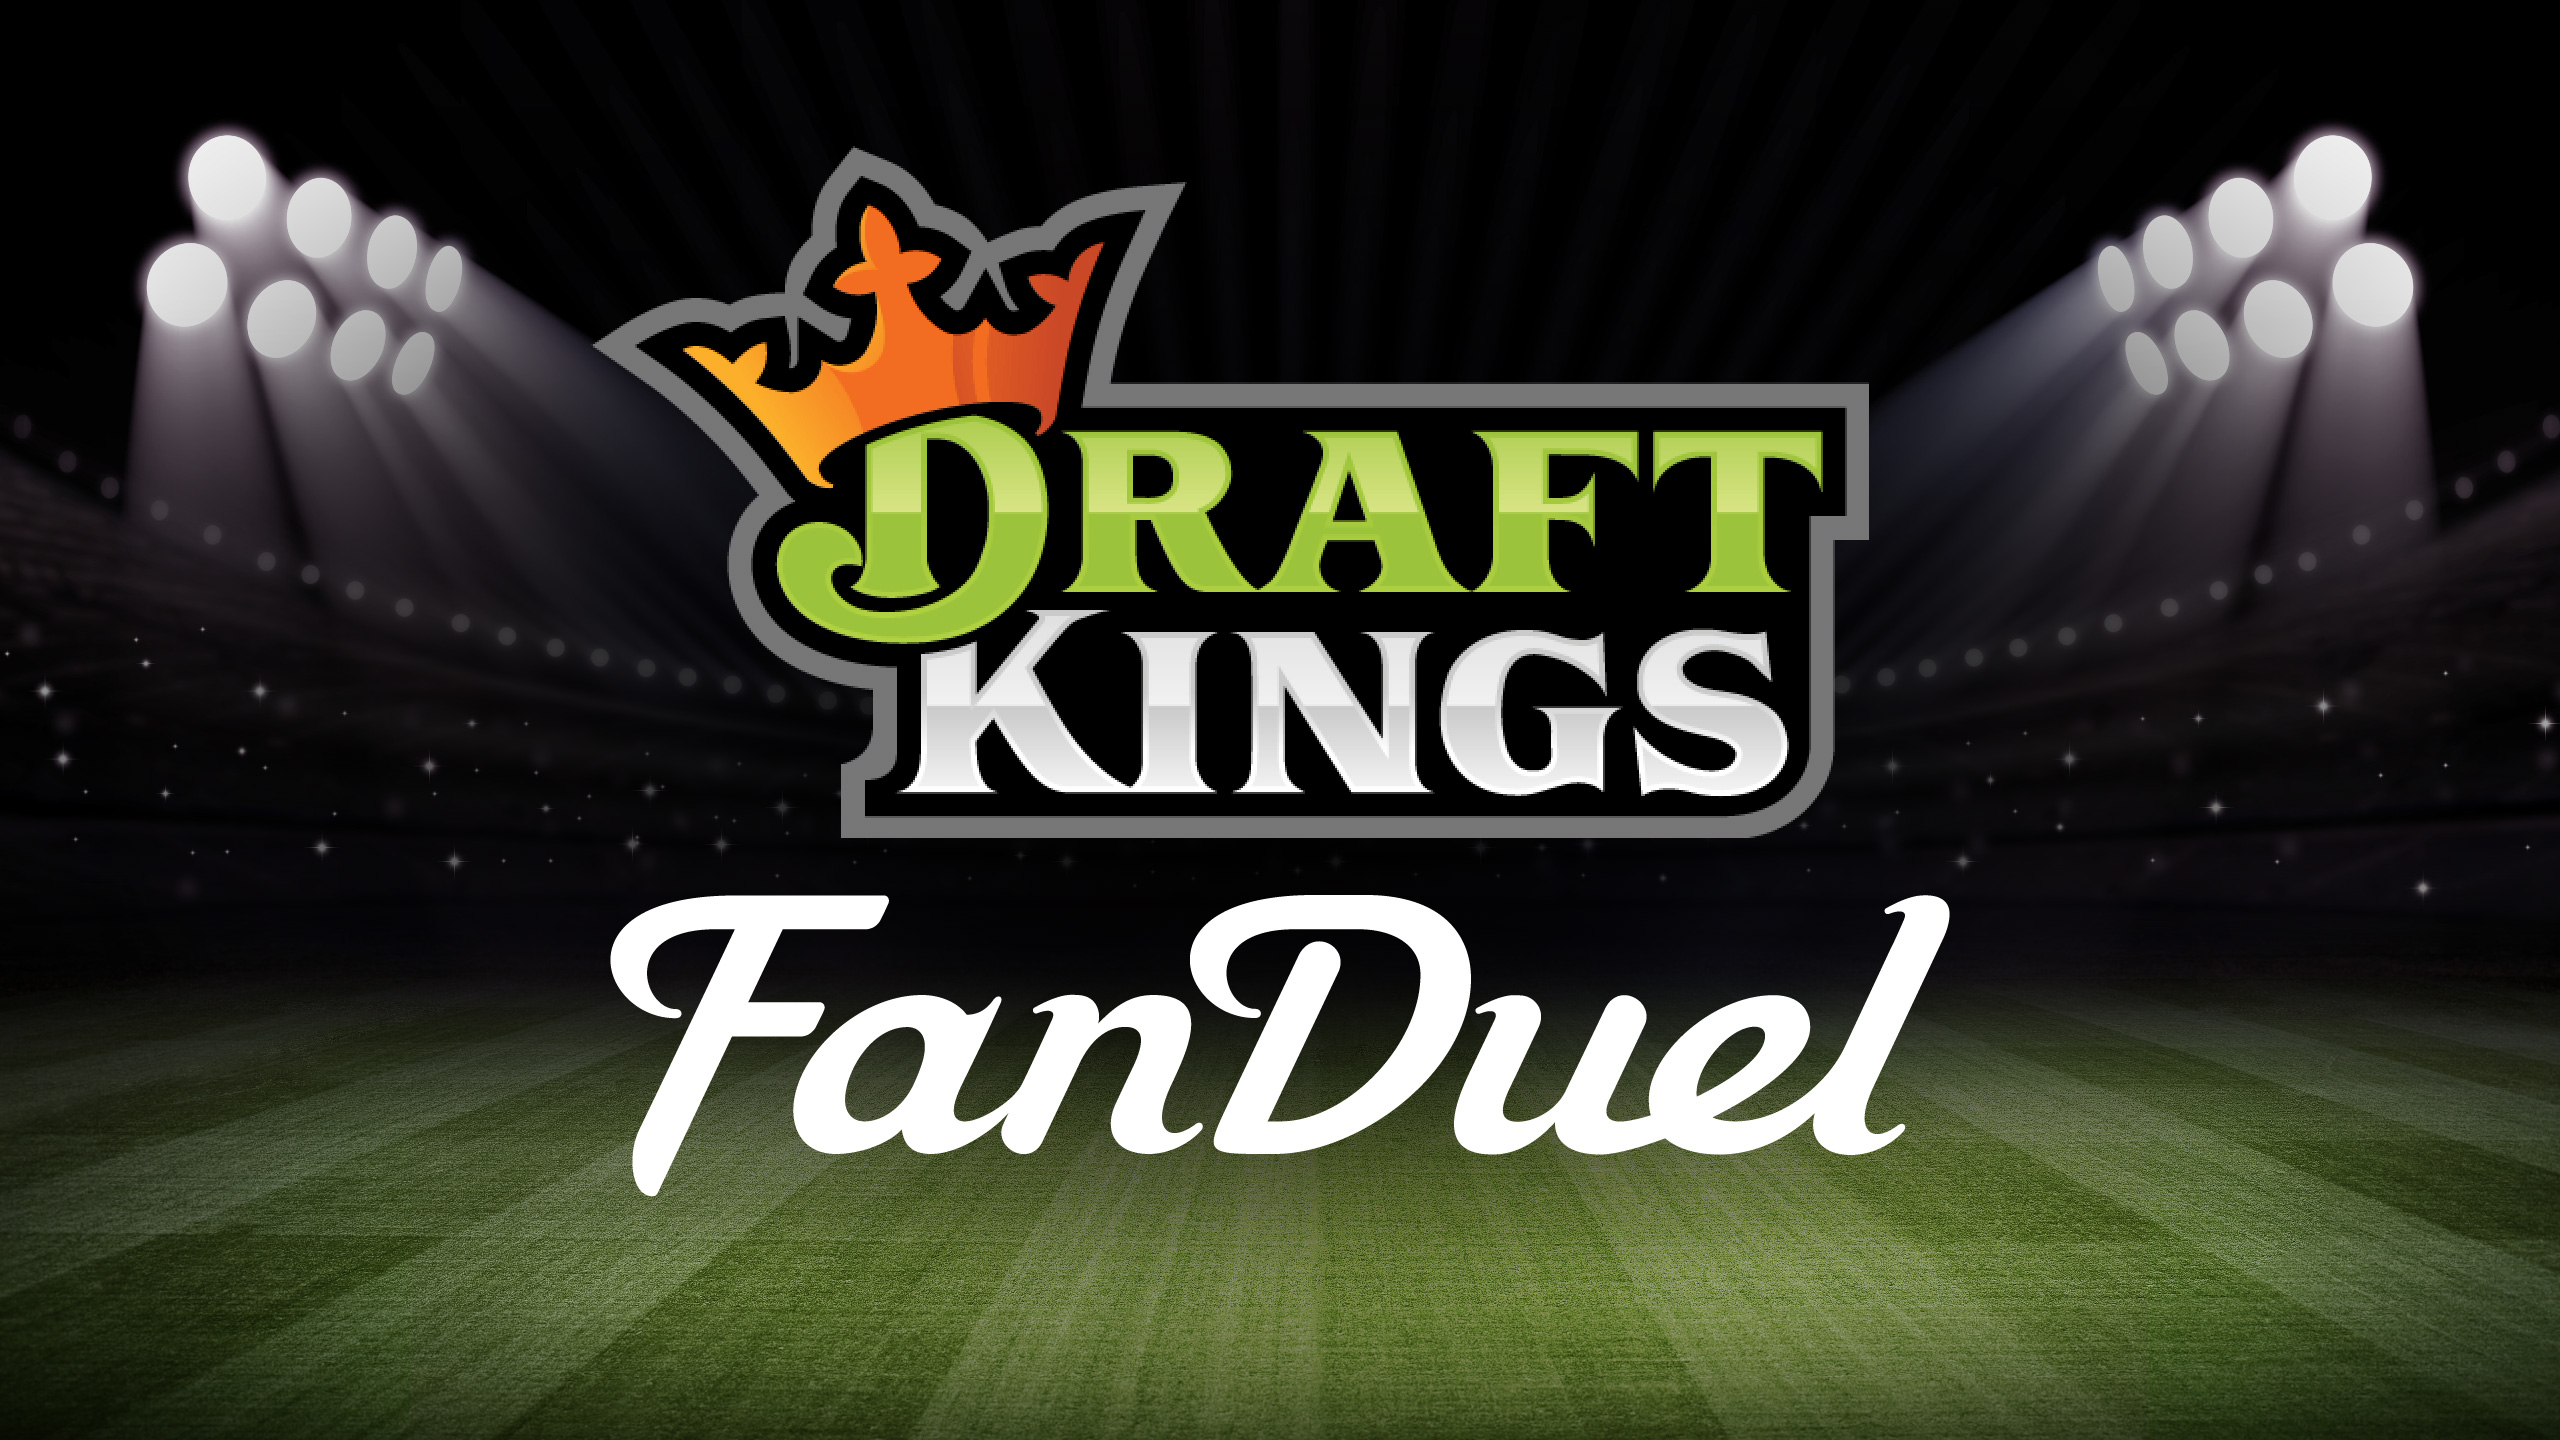 The FTC is attempting to block the DraftKings-FanDuel ...